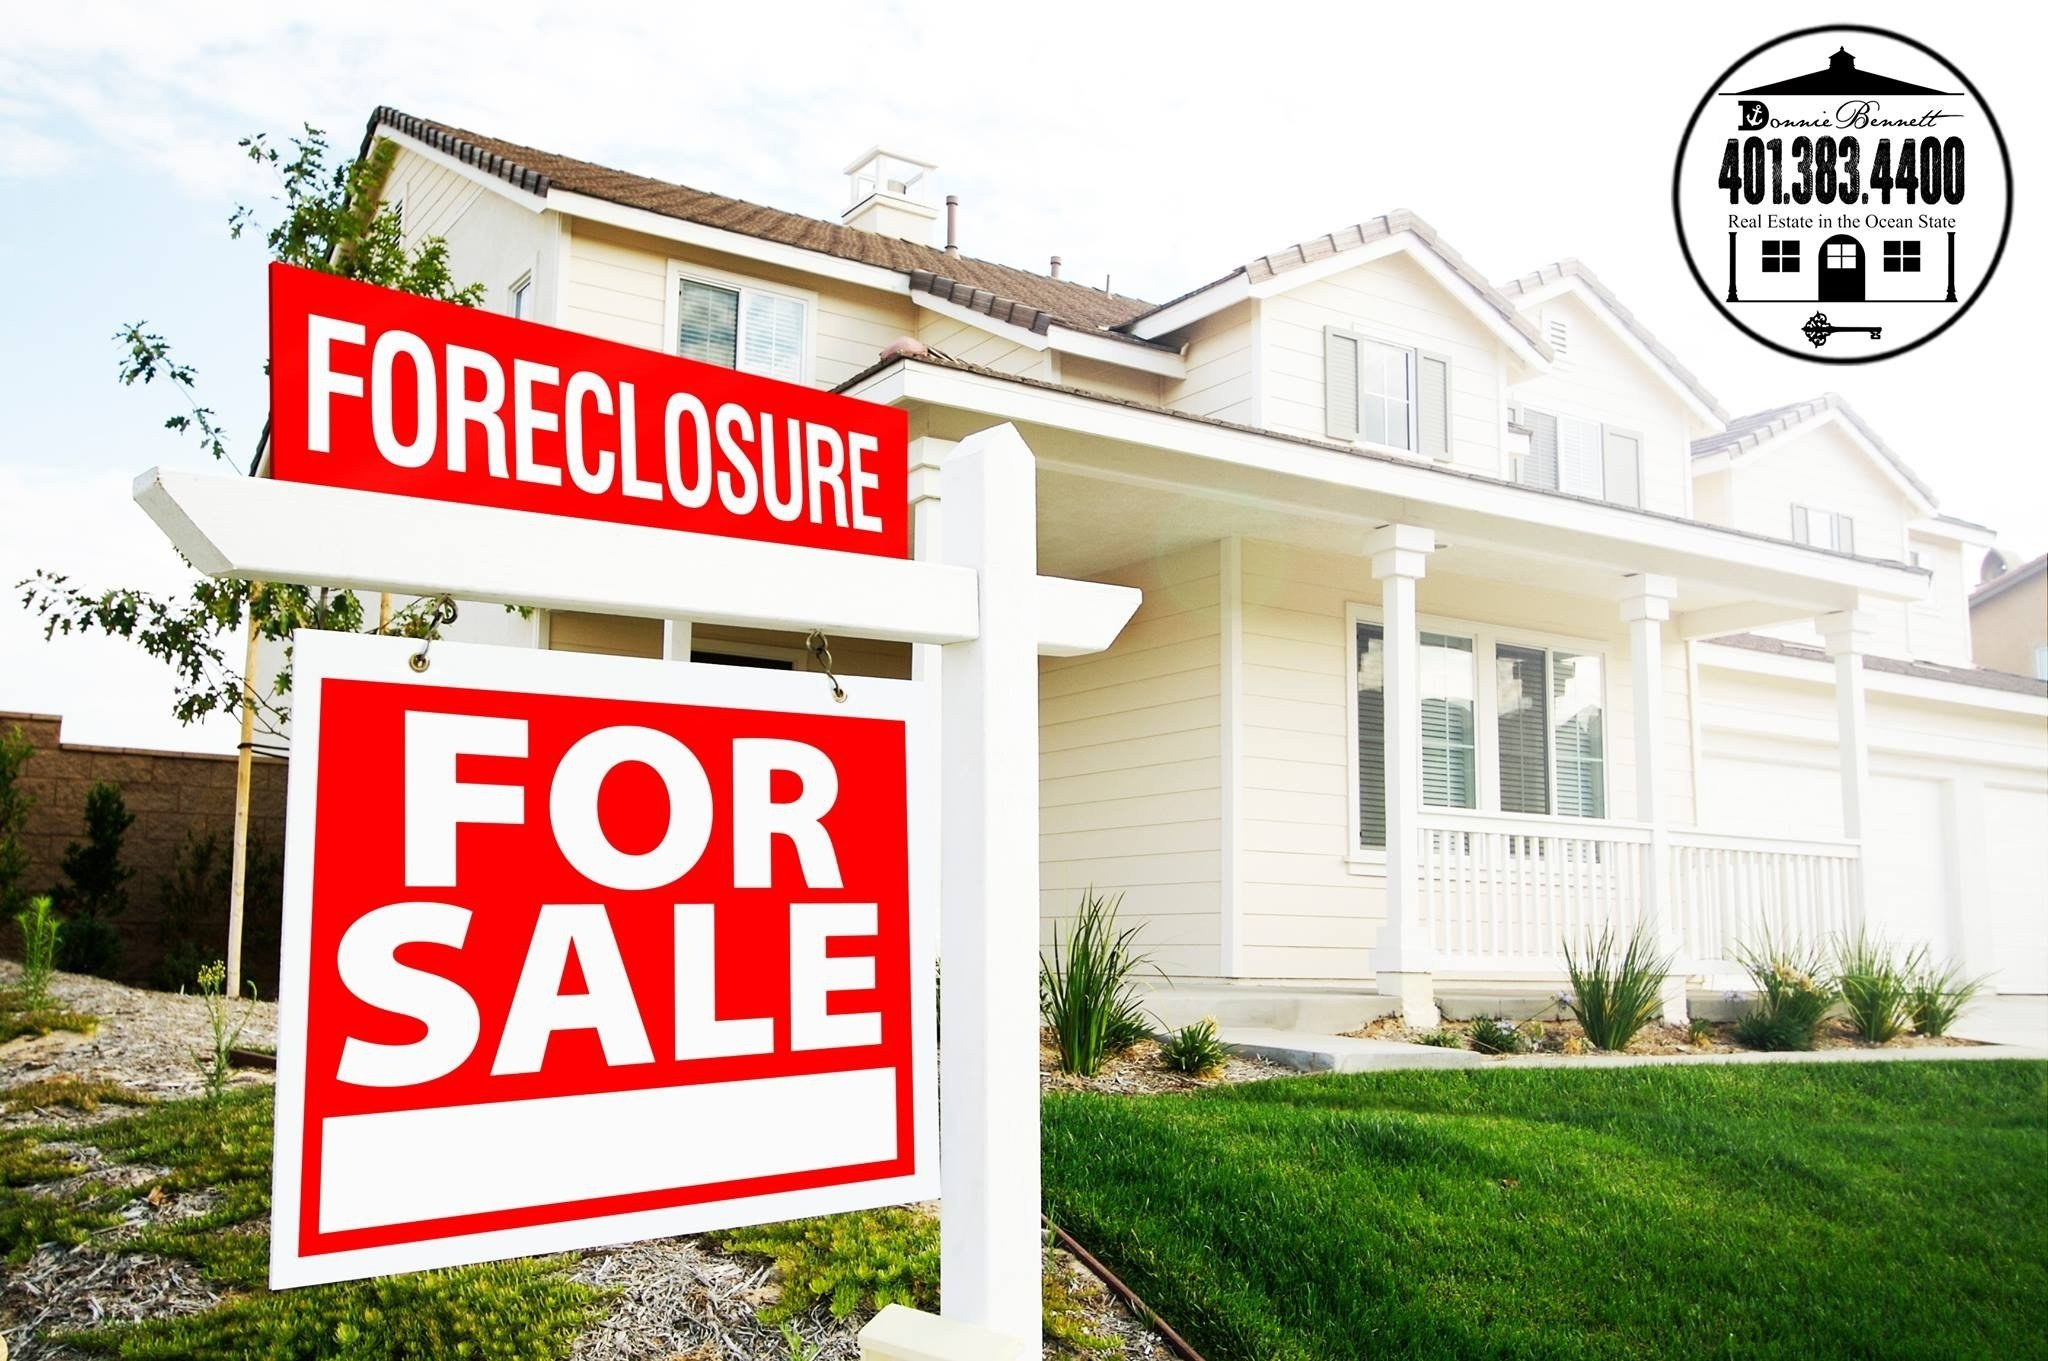 10 Ideal Is Buying A Foreclosed Home A Good Idea e29886 6 things to know when buying a foreclosed home e29886 welcome to